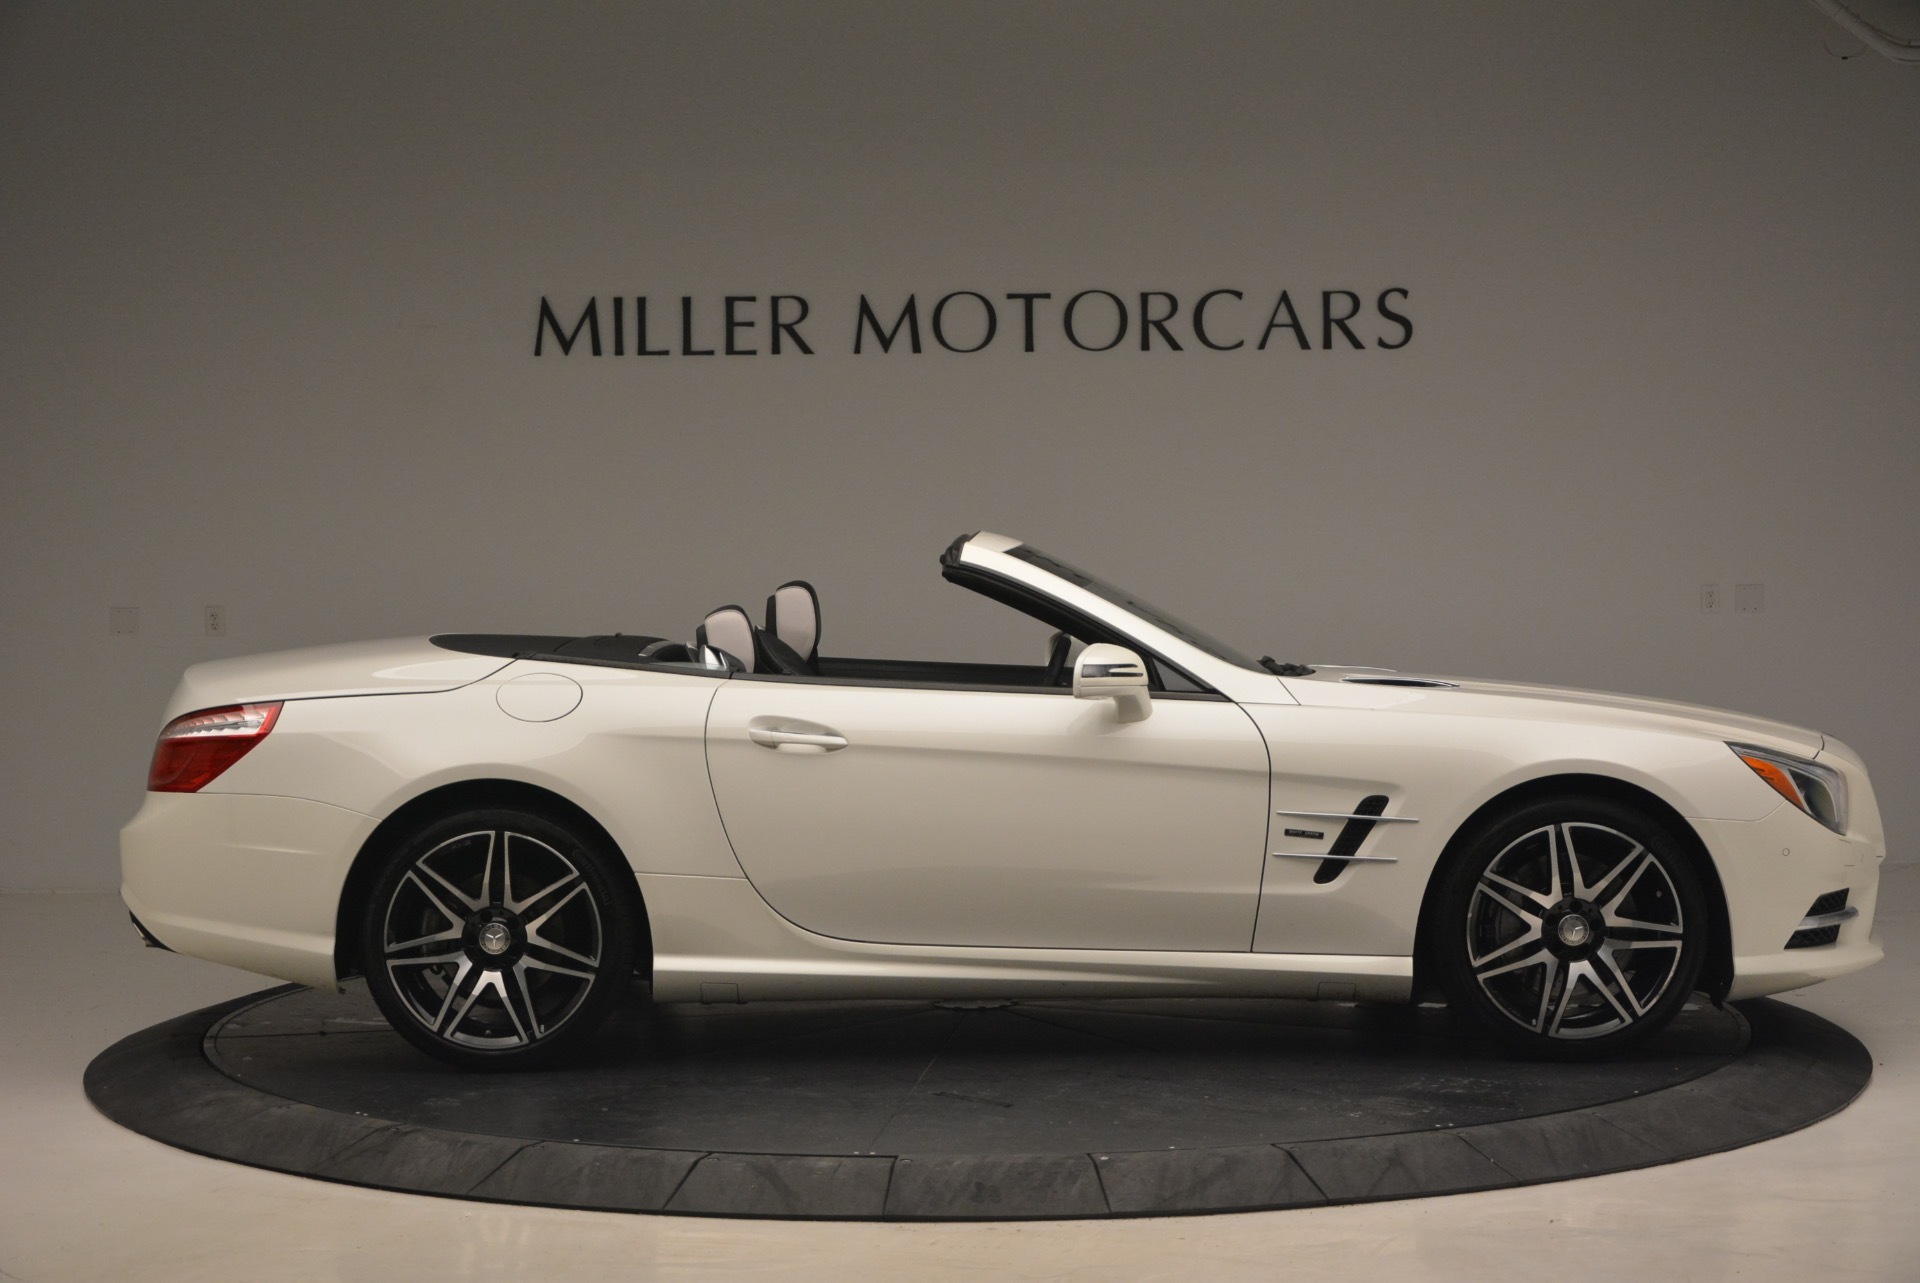 Used 2015 Mercedes Benz SL-Class SL 550 For Sale In Greenwich, CT 1261_p10